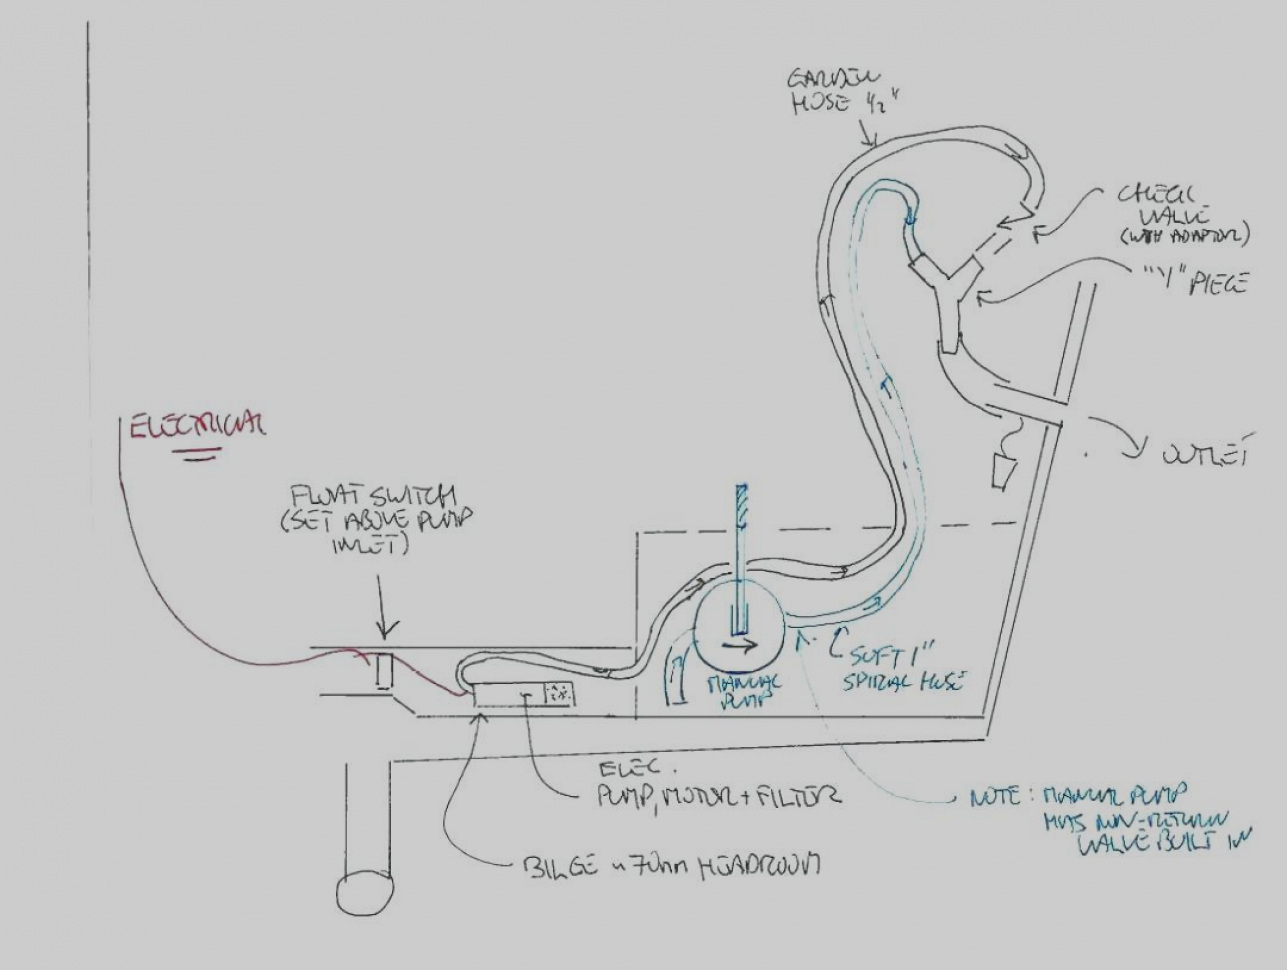 rule 1100 bilge pump wiring diagram